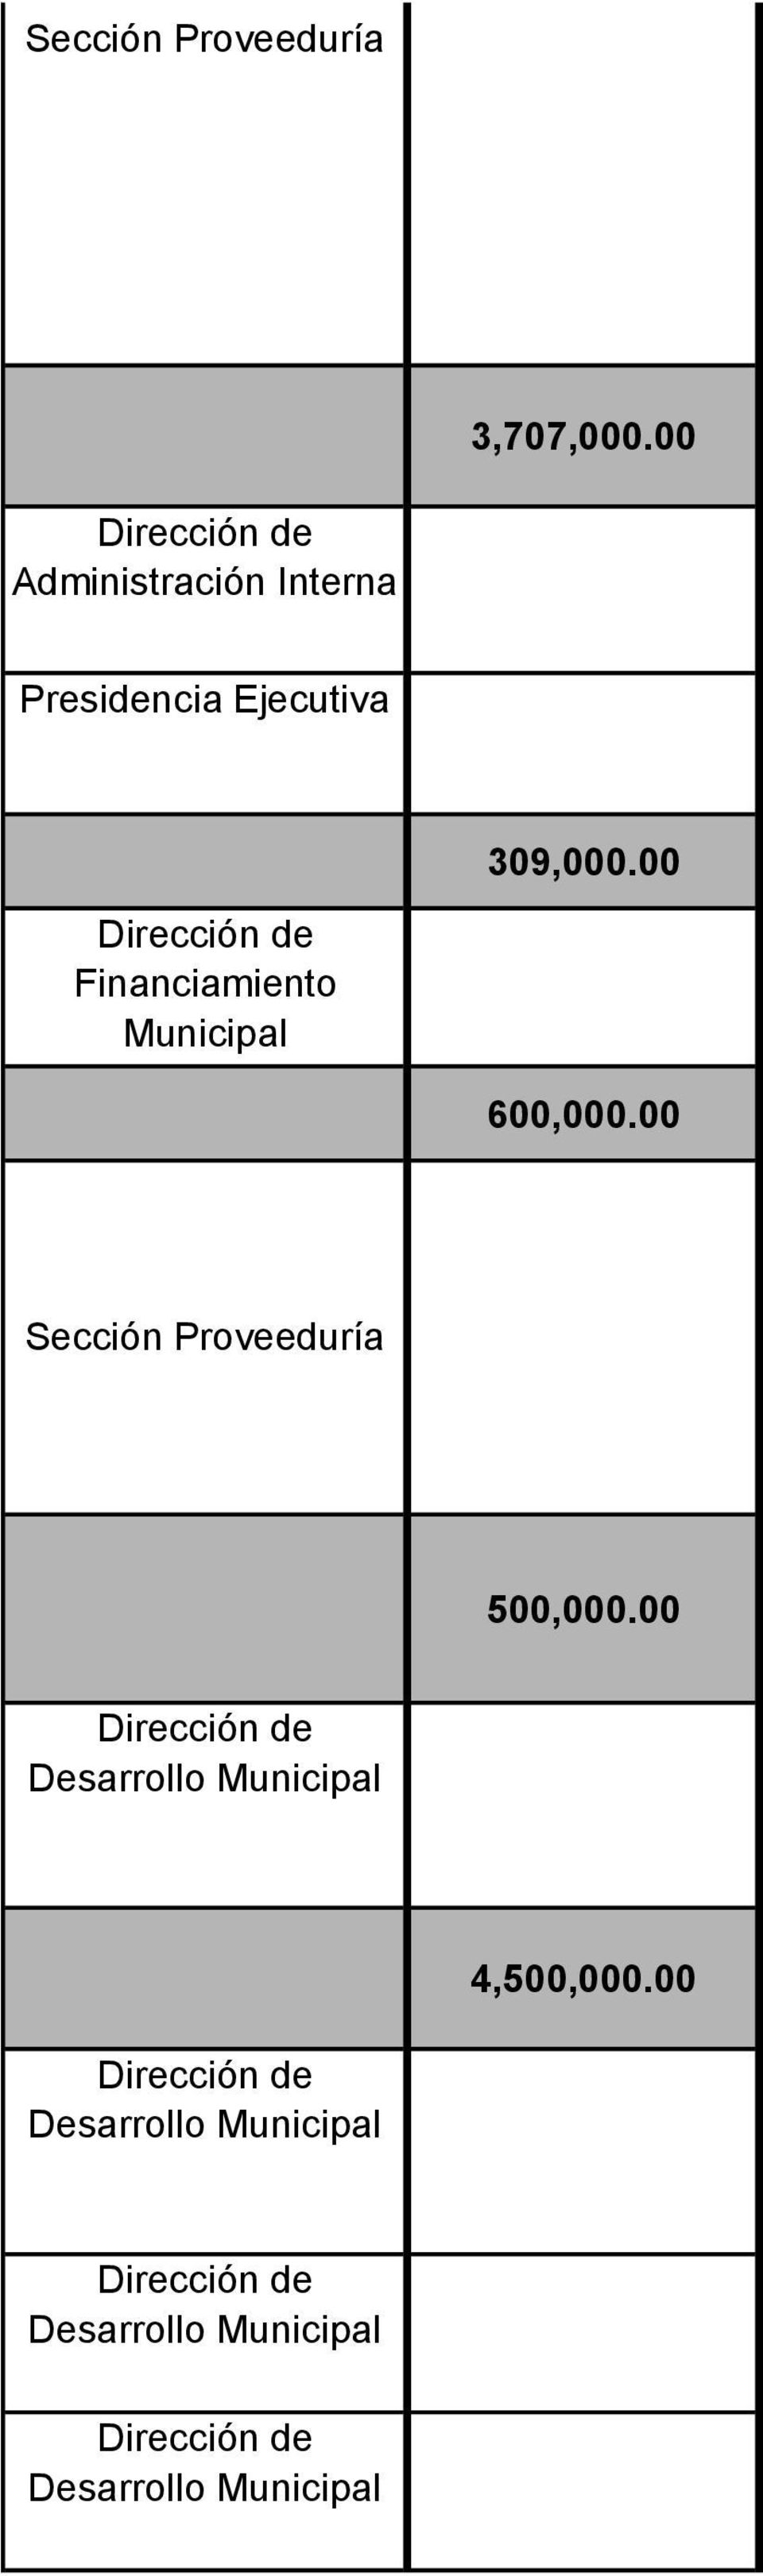 00 Financiamiento 600,000.